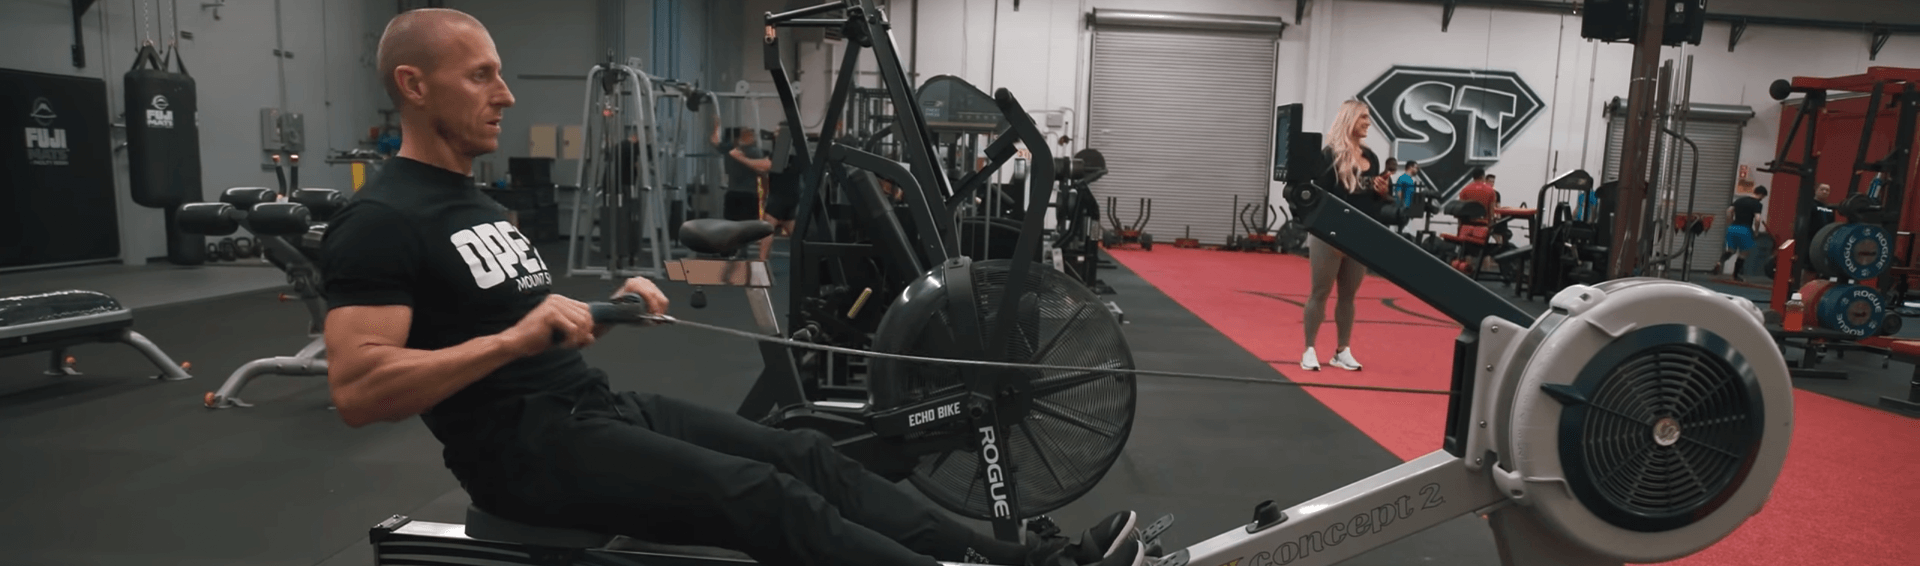 Cardio For Strength Athletes - Improve Your Lifts